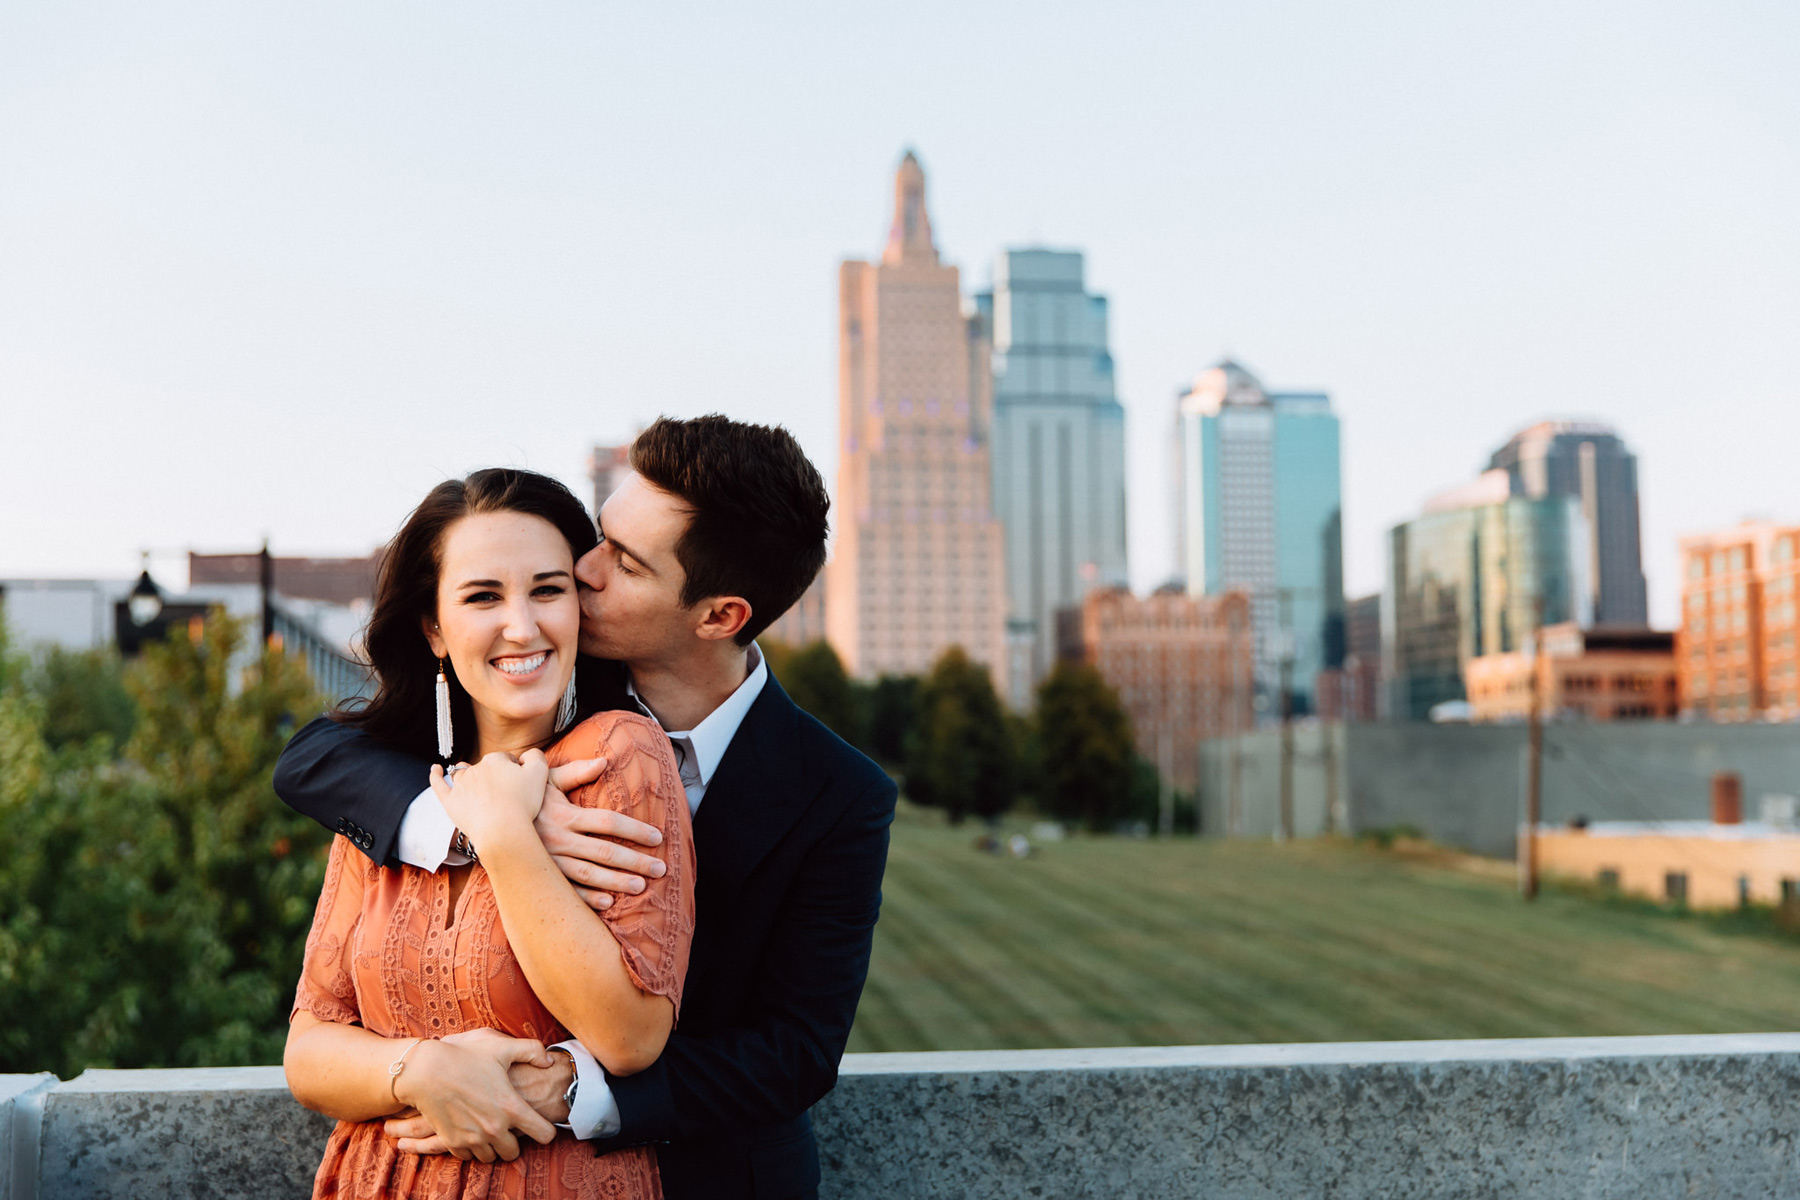 165_Crossroads Engagement Session Kansas City_Kindling Wedding Photography.JPG